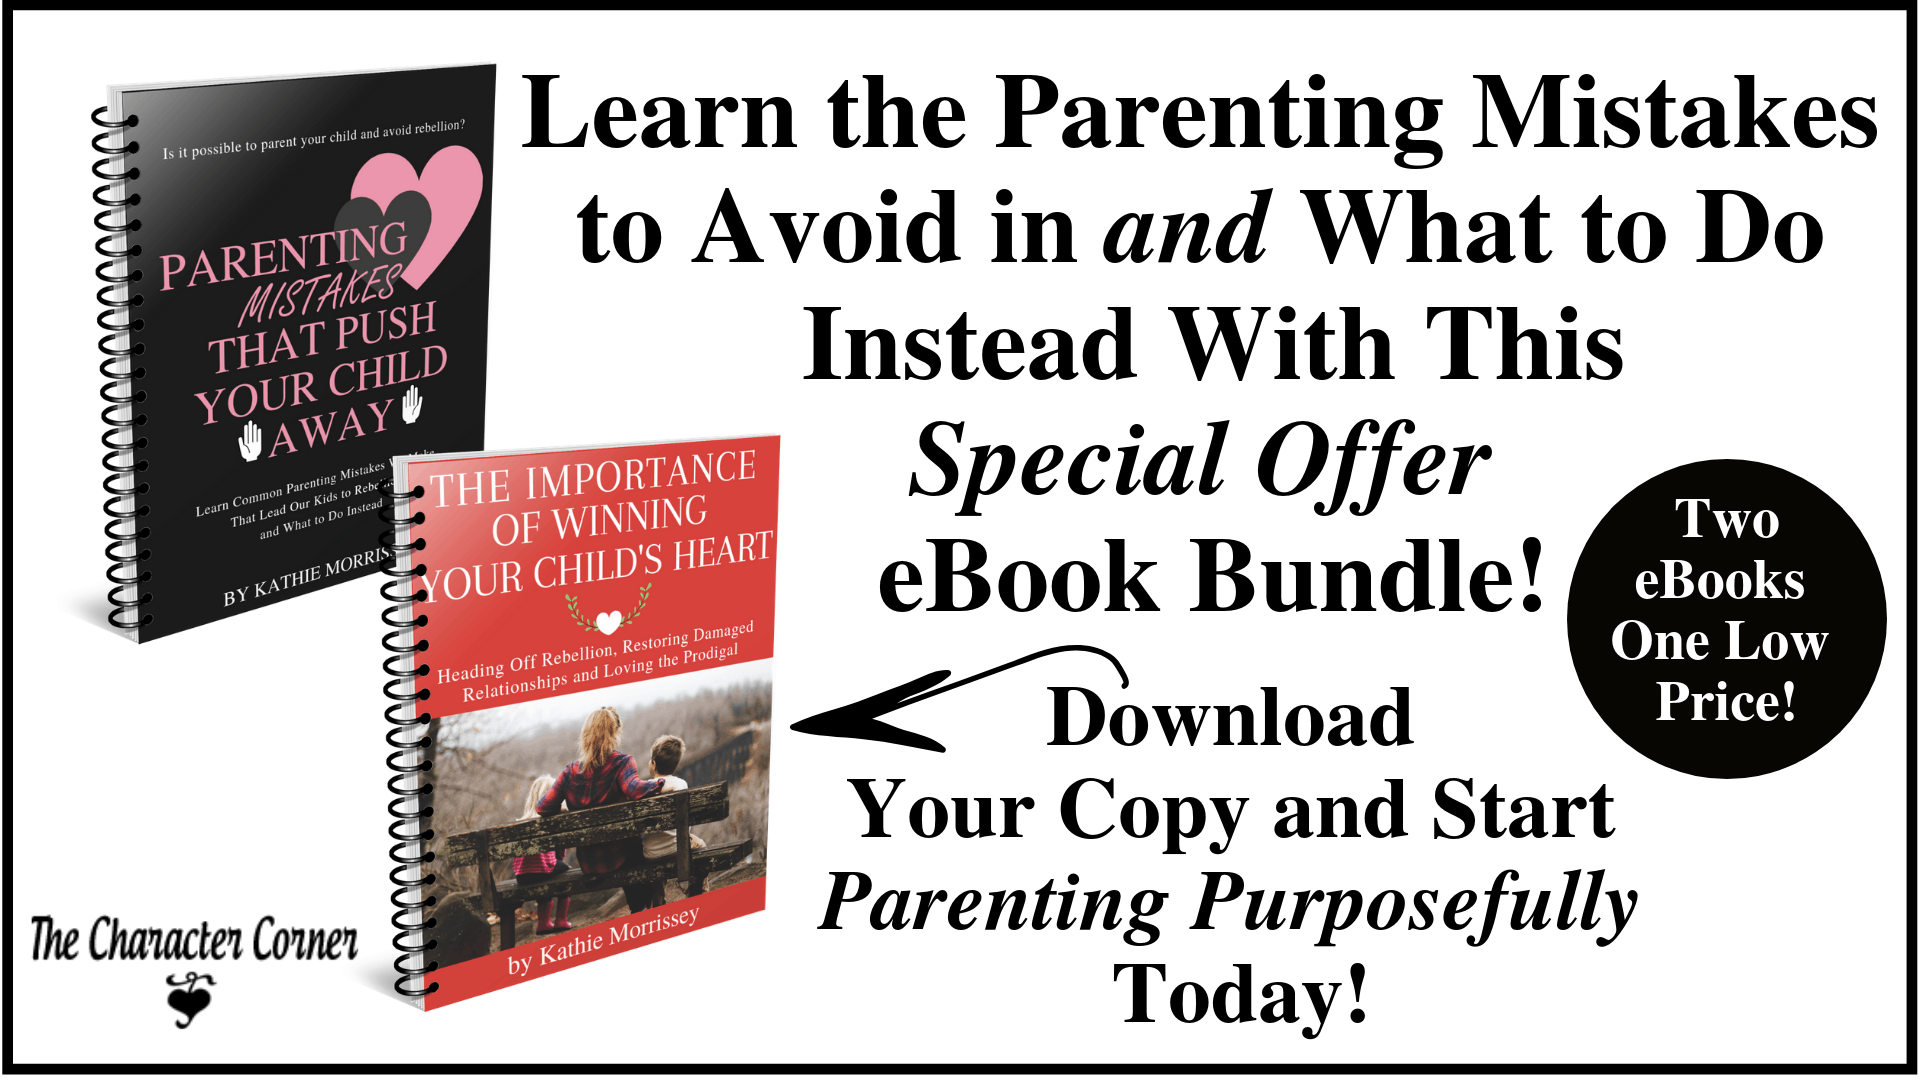 Parenting Mistakes and Winning the Heart of Your Child